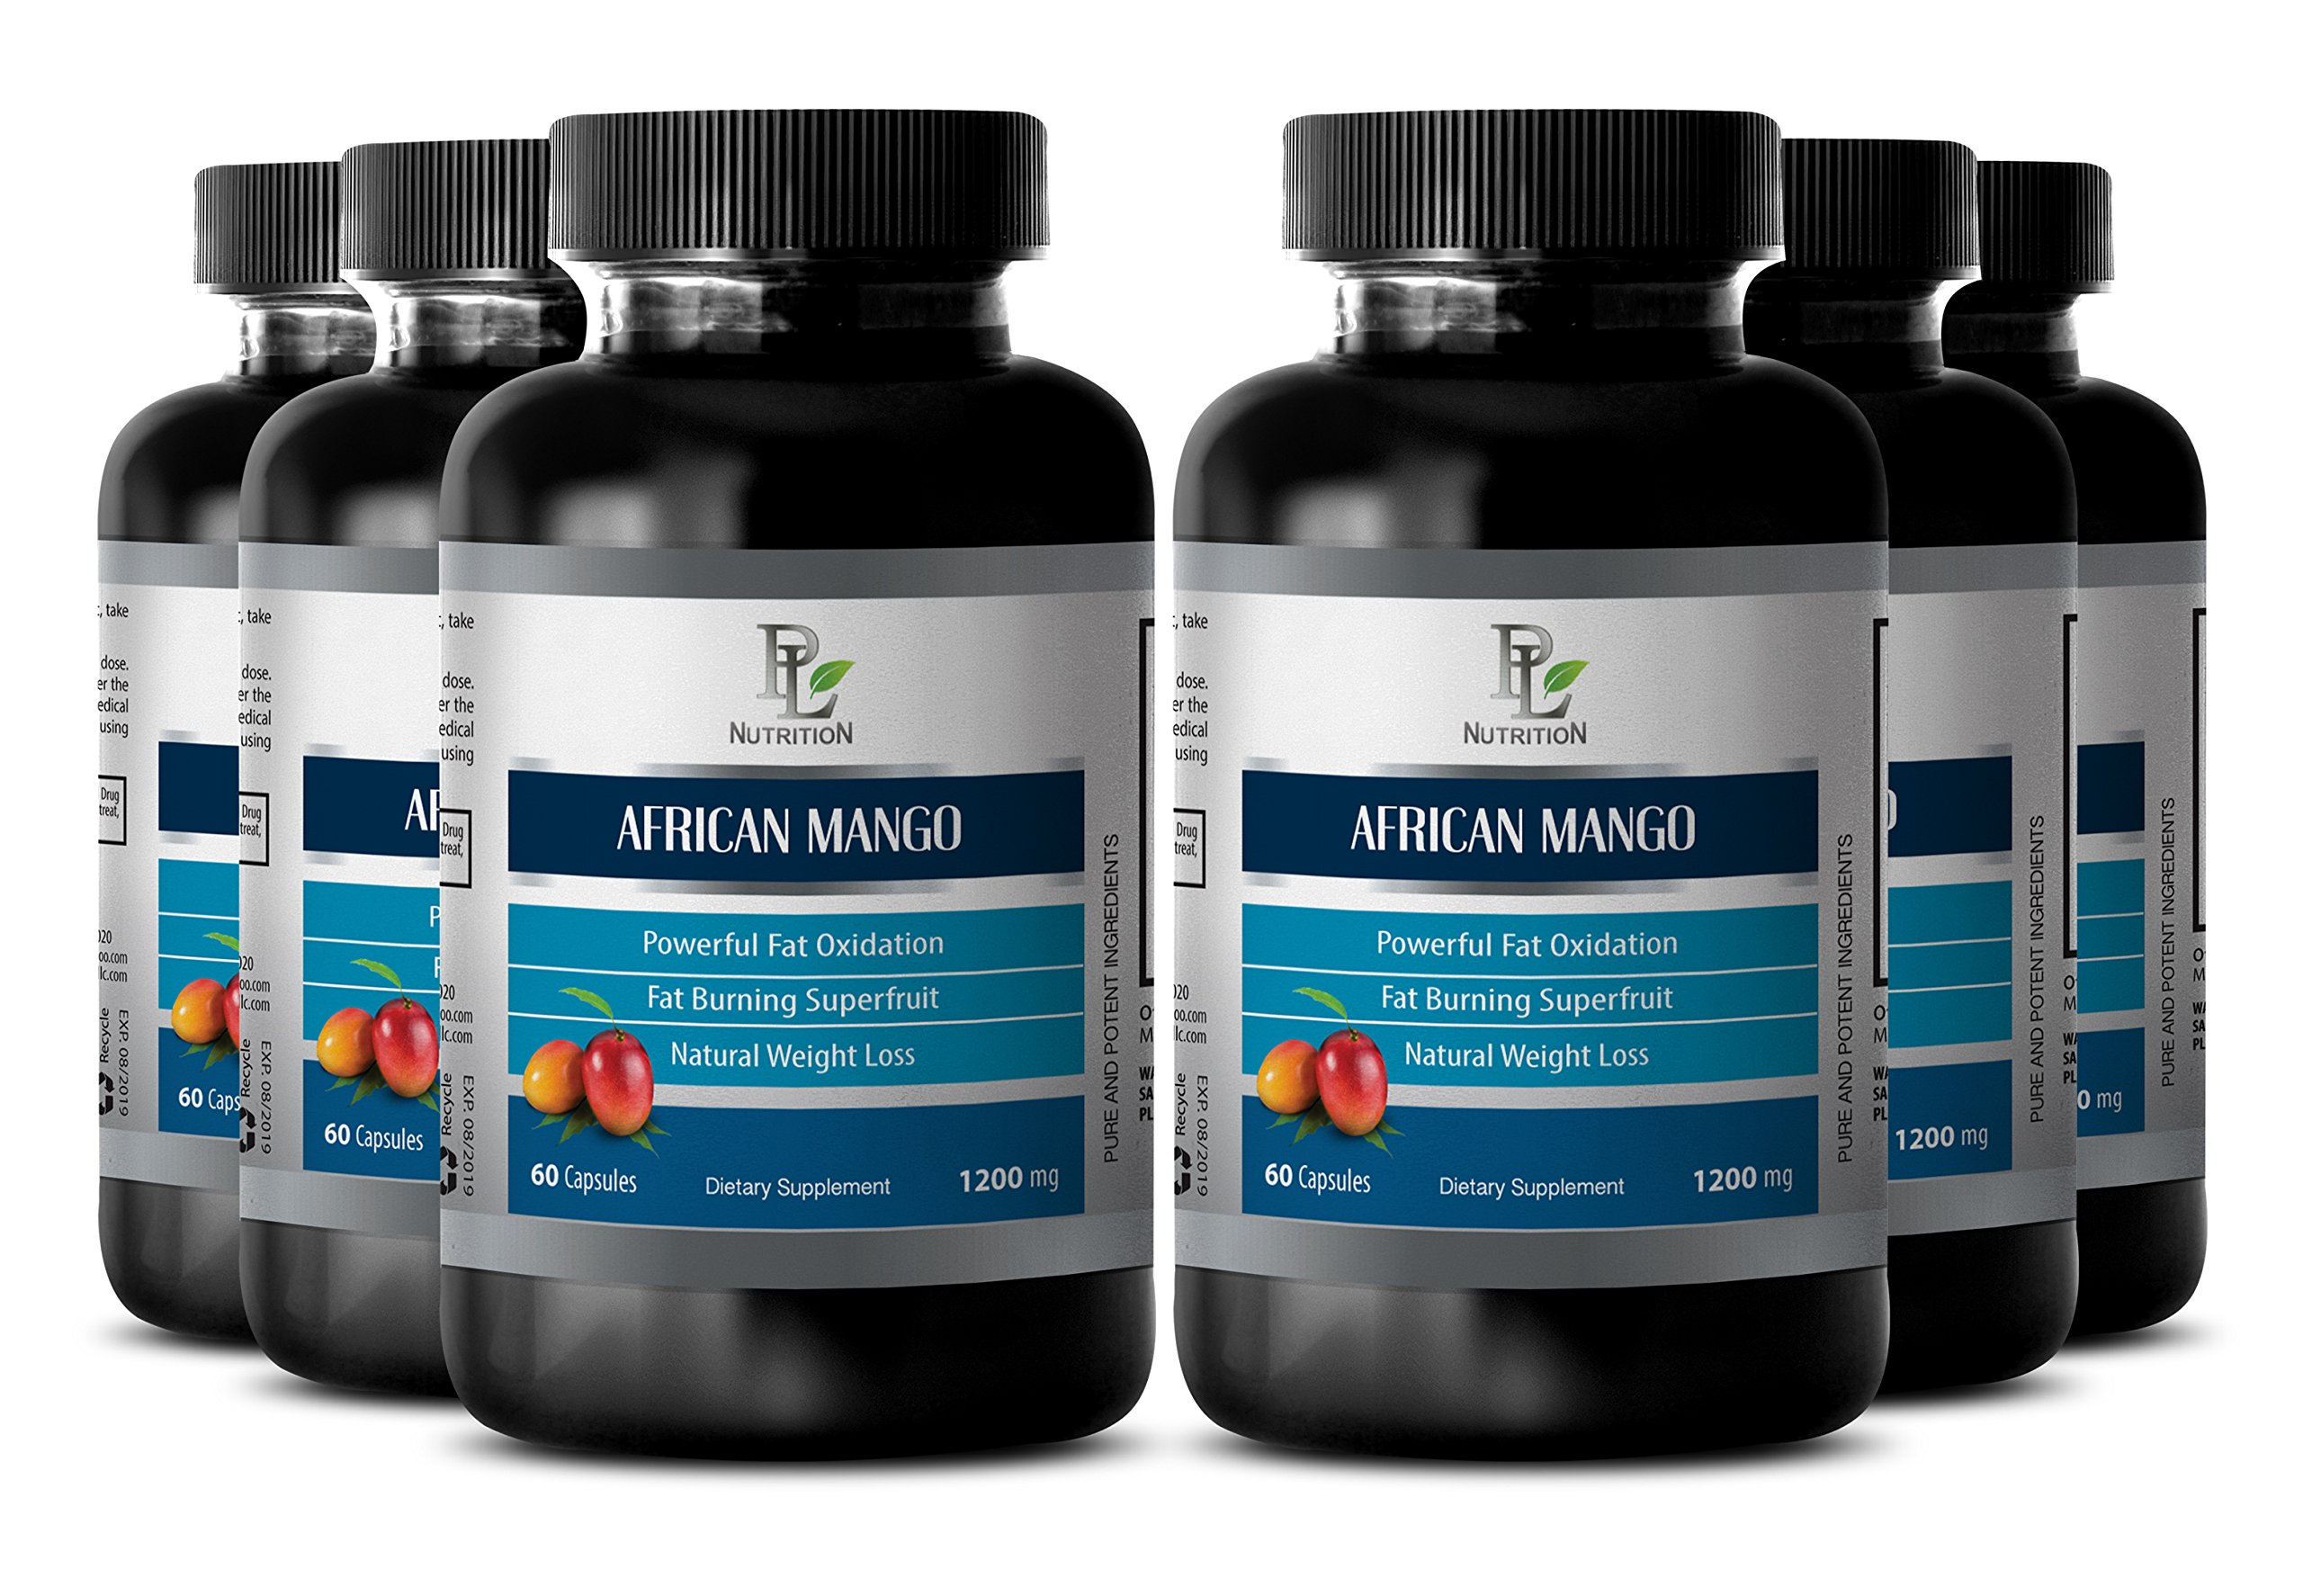 Beta-carotene African Mango supplement - AFRICAN MANGO EXTRACT - Promotes blood circulation - 6 Bottles 360 capsules by PL NUTRITION